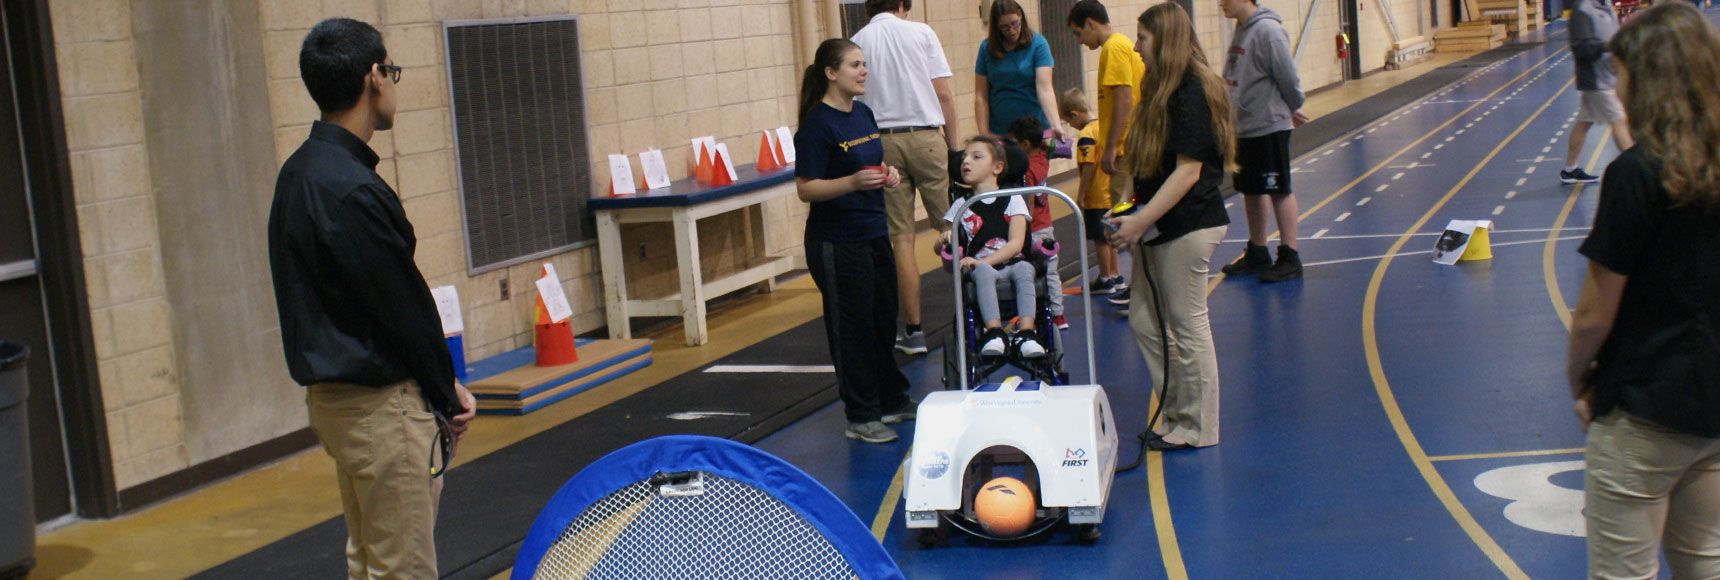 Students using a ball kicking robot